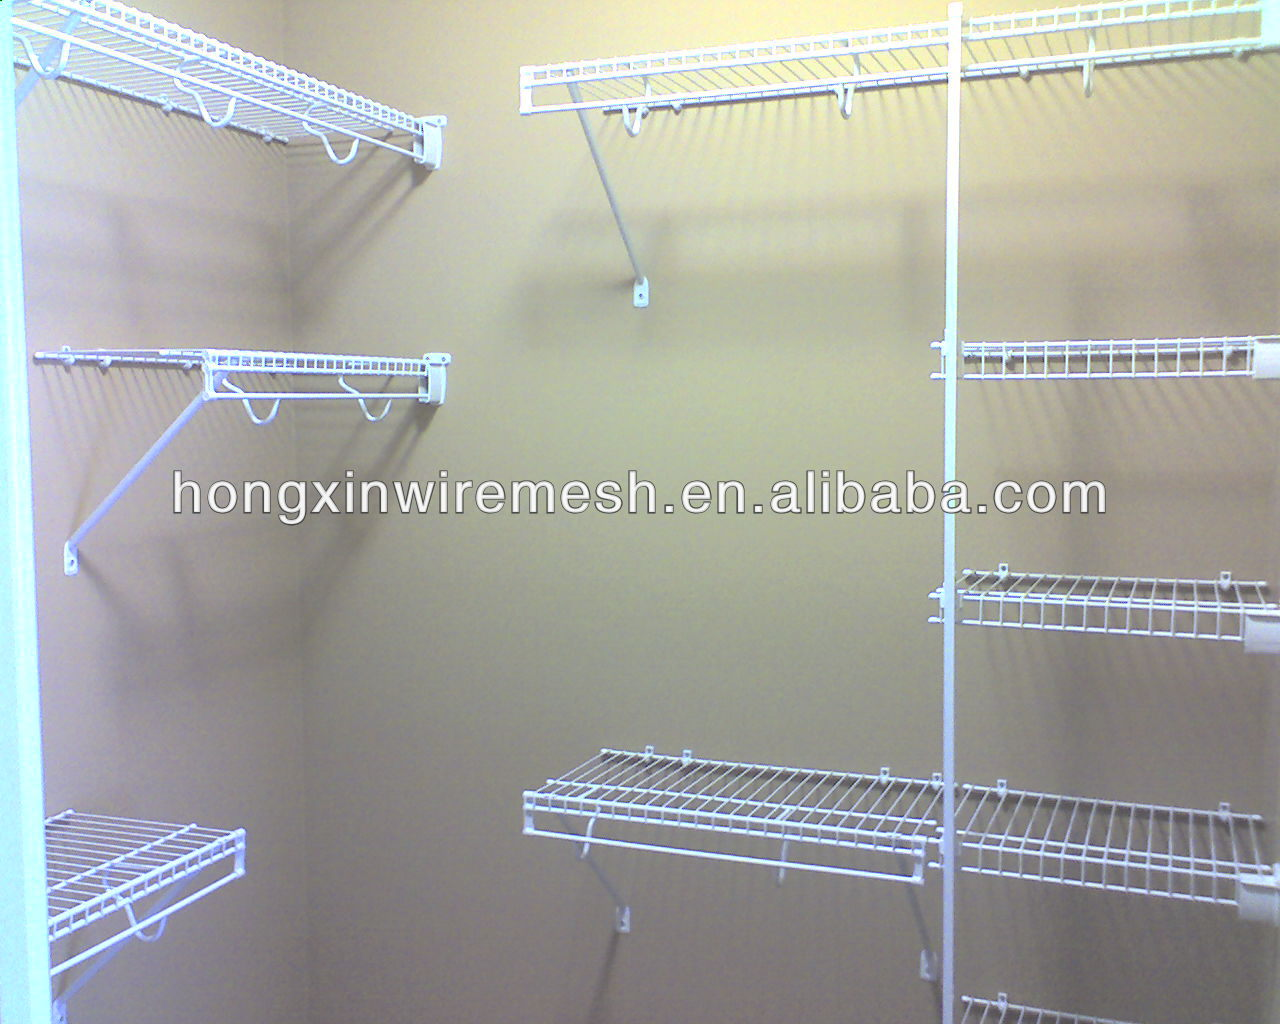 Plastic Coated Wire Shelving - Buy Plastic Coated Wire Shelving ...